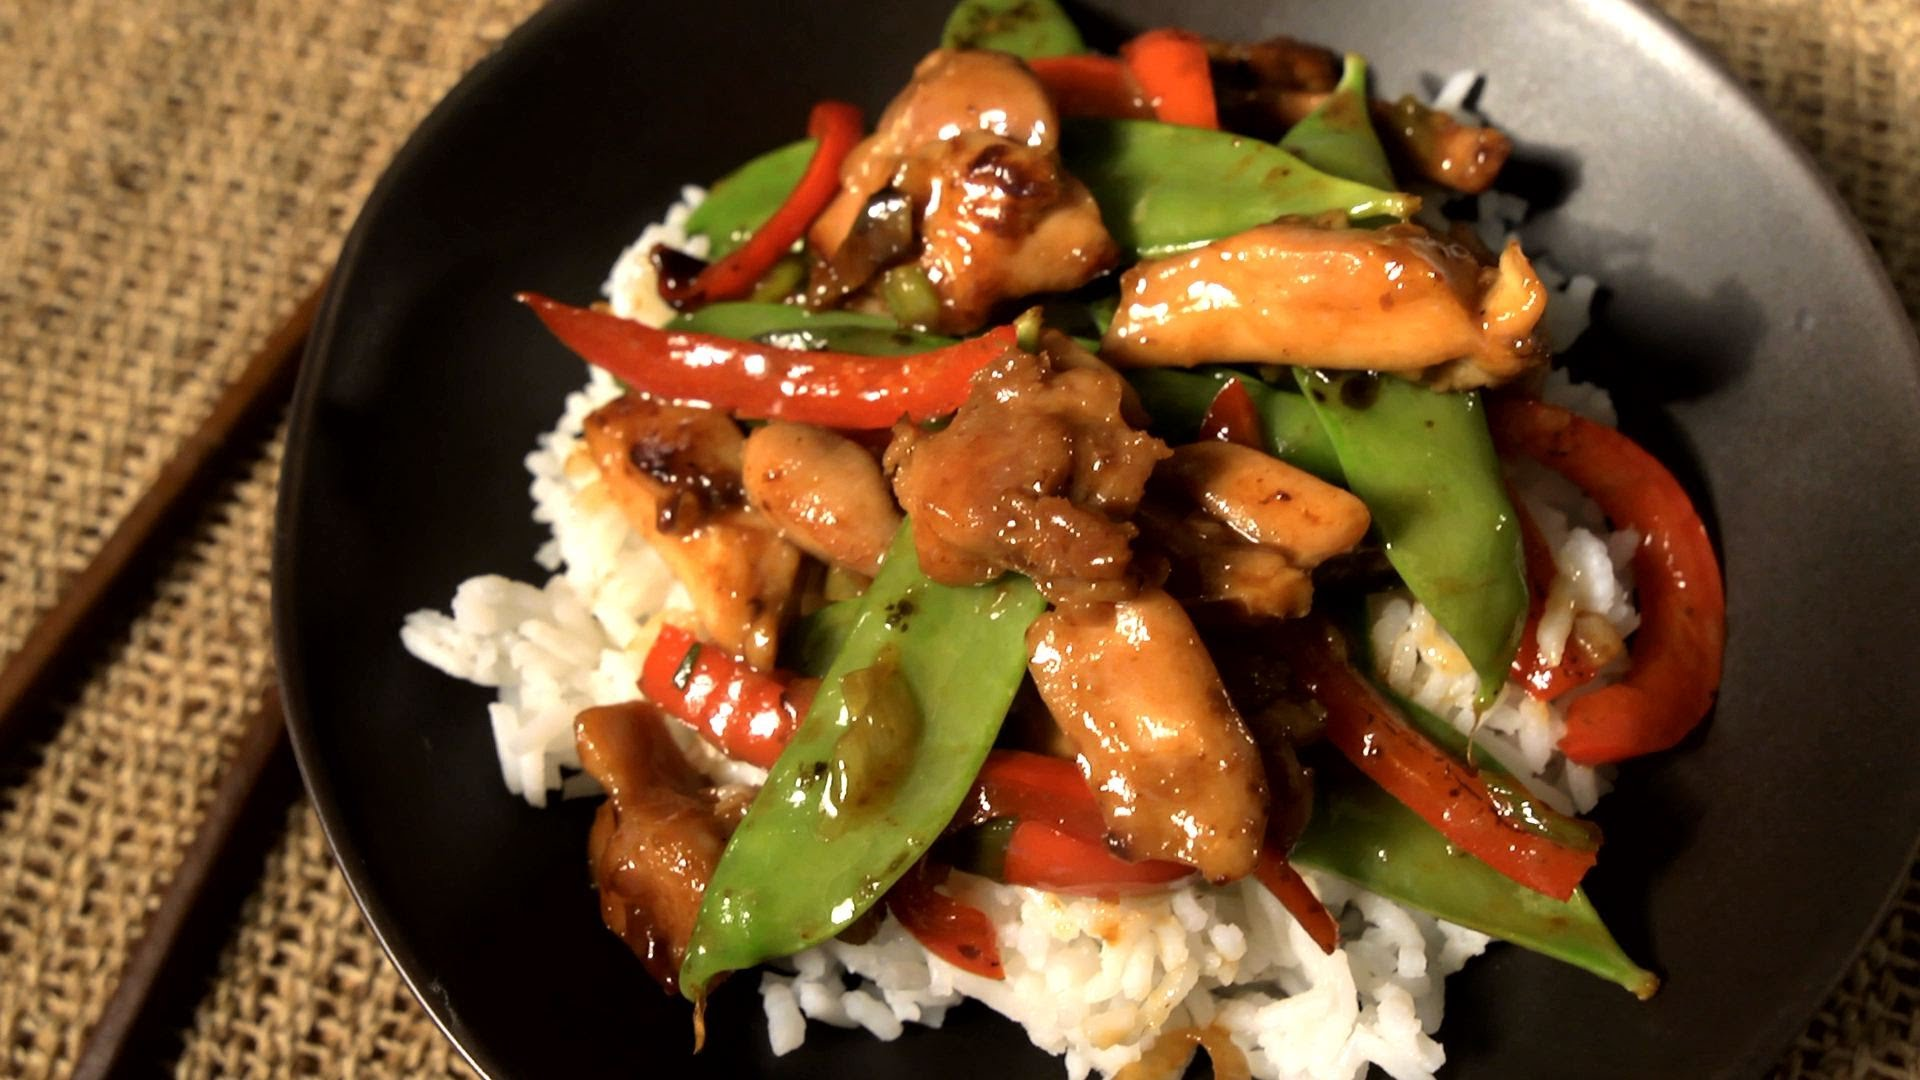 How to Make an Easy Chicken Stir-Fry – The Easiest Way